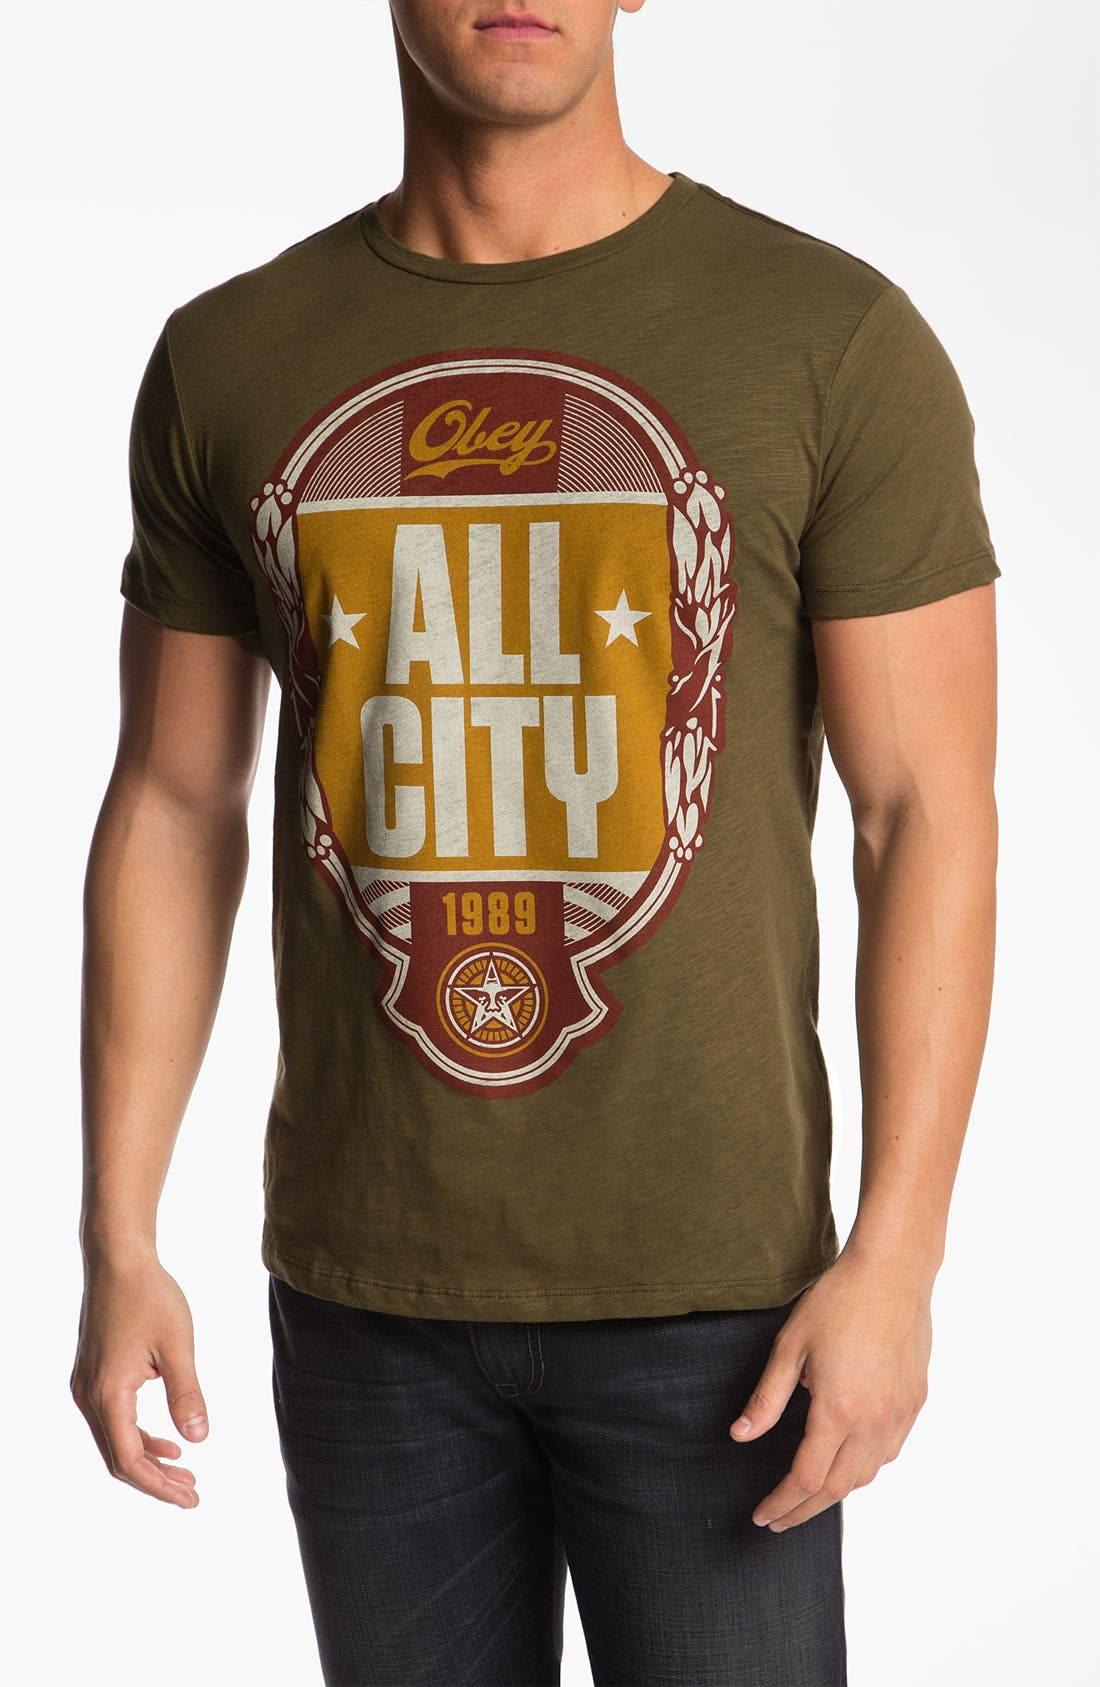 Main Image - Obey 'All City' Graphic T-Shirt